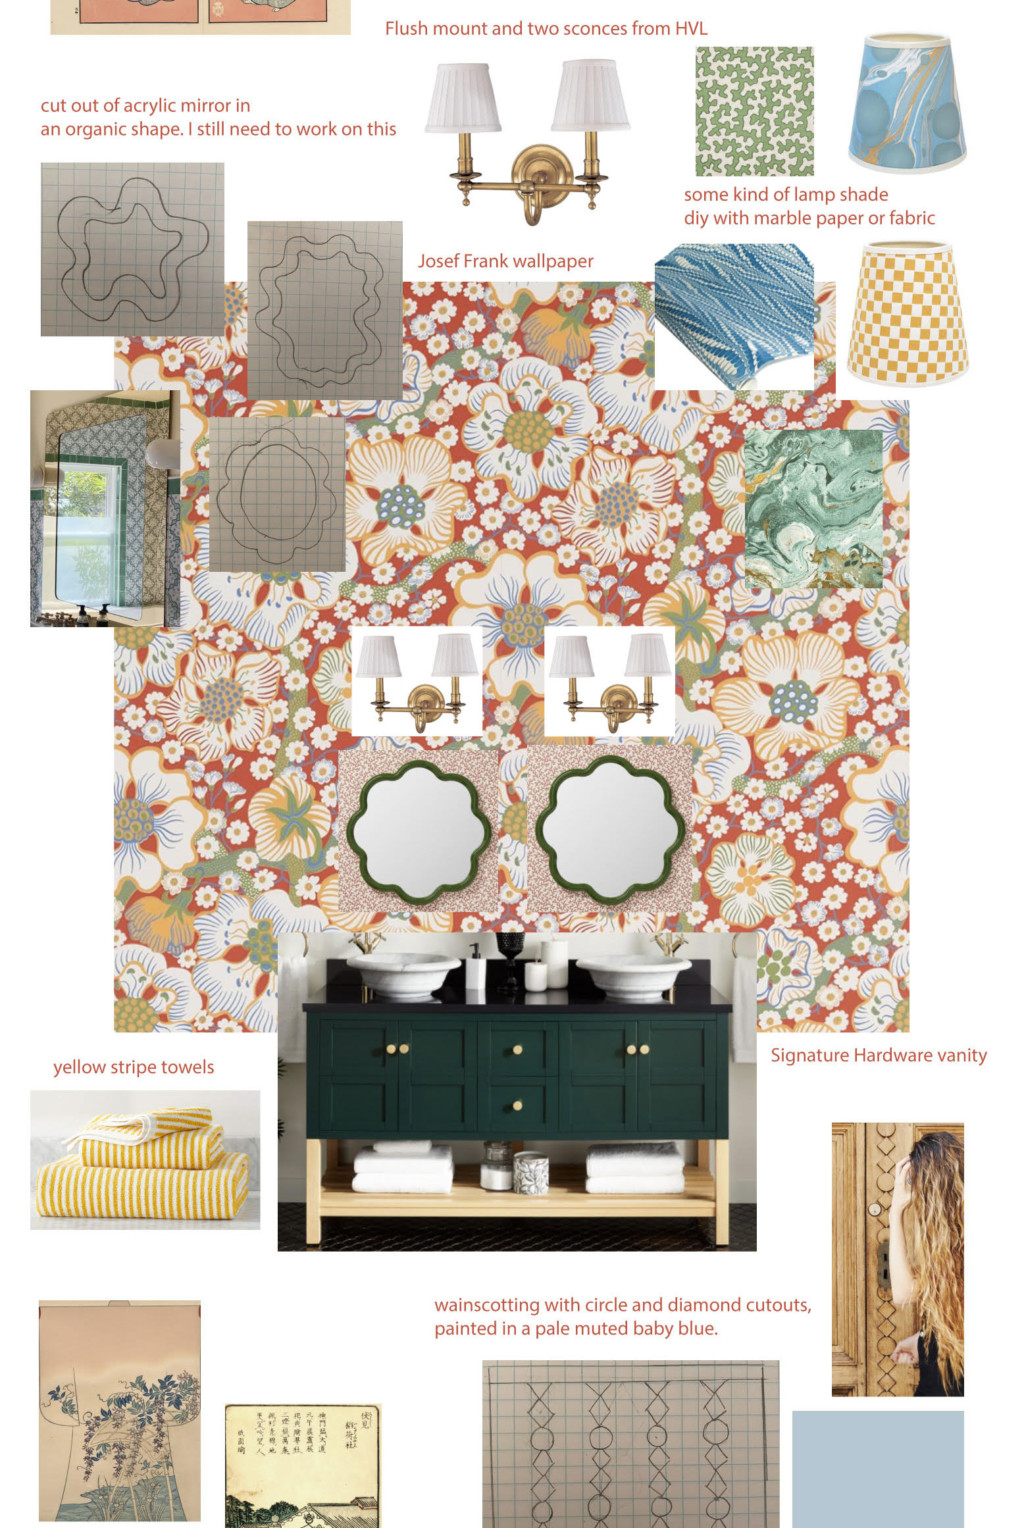 moodboard mock up of the bathroom, including red floral wallpaper, a green vanity, our towels and paint colors, and lighting.